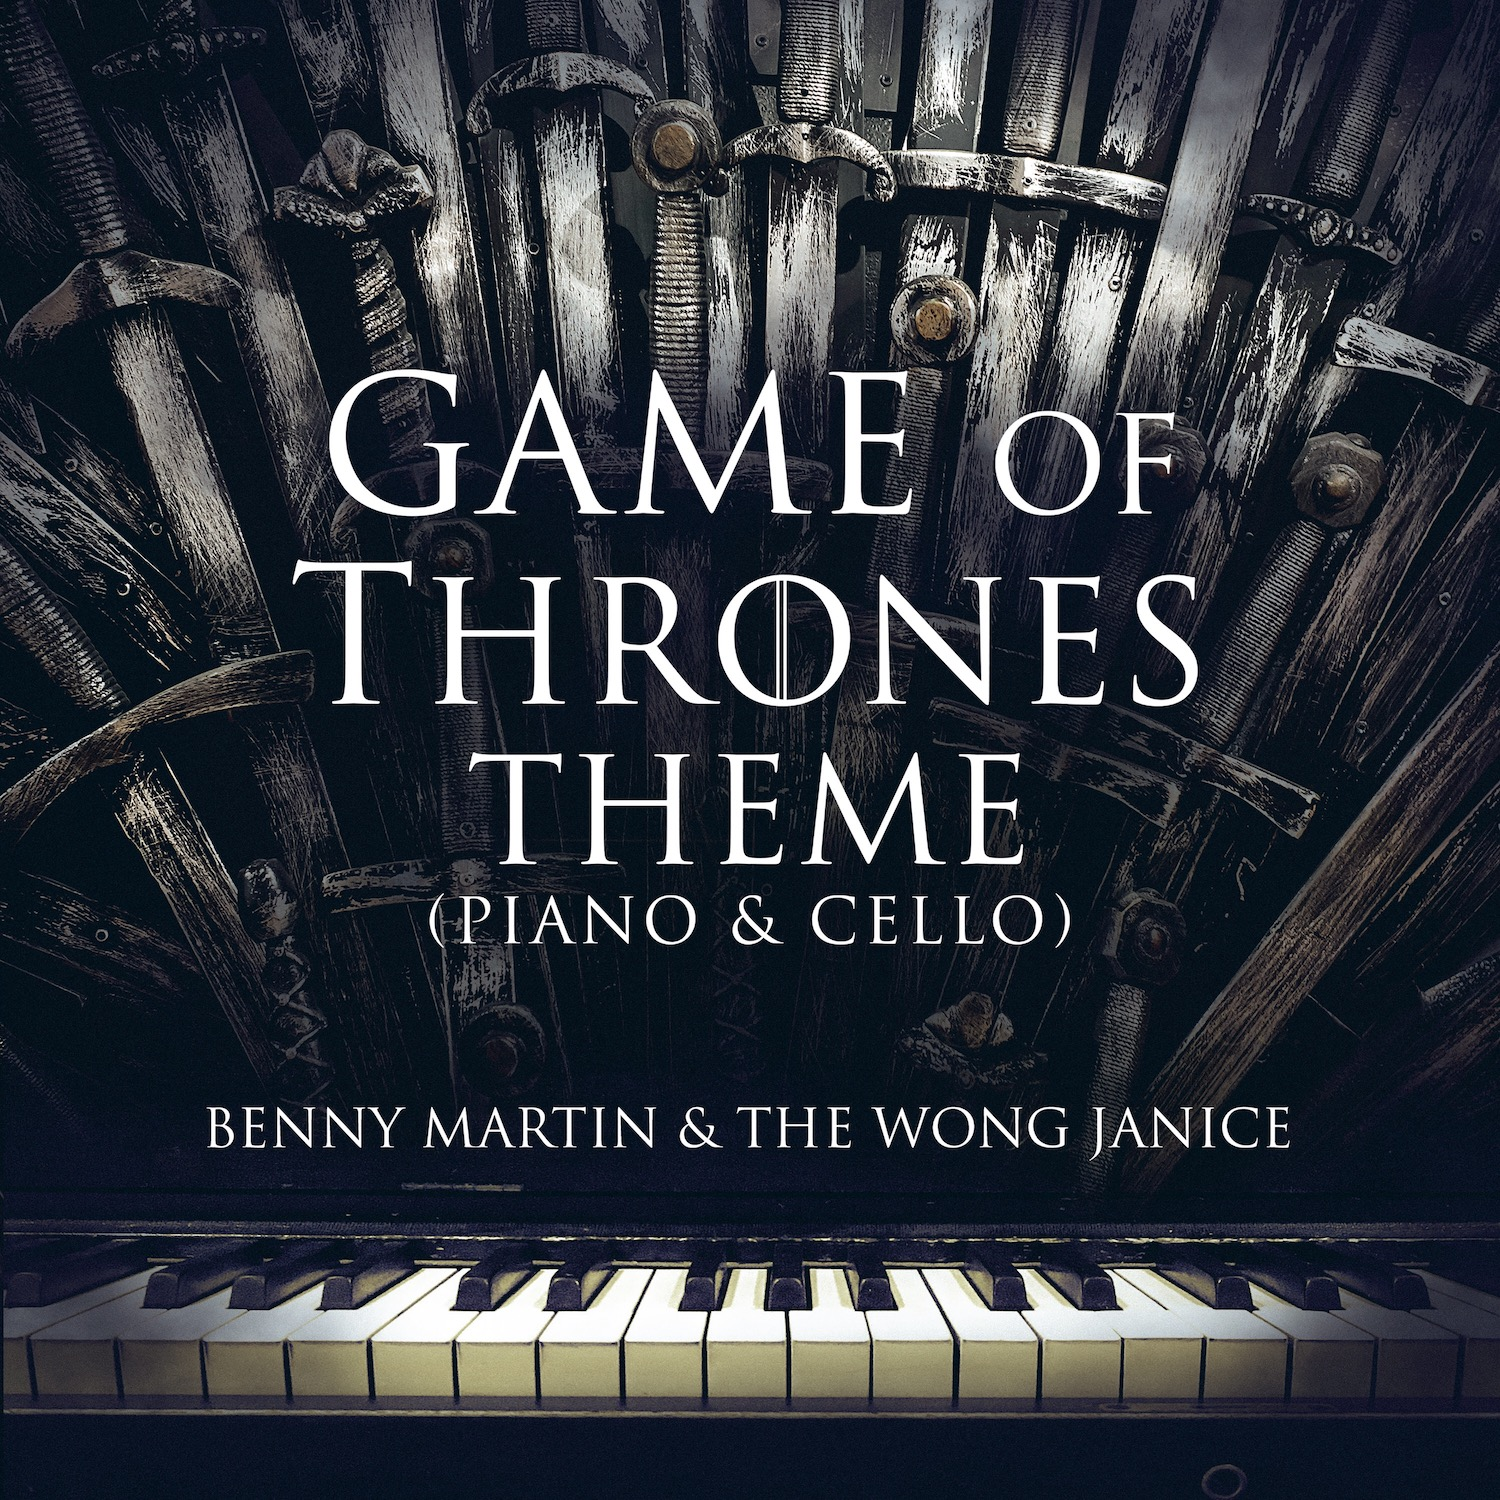 Game-of-Thrones-piano-cello-cover-Benny-Martin-The-Wong-Janice.JPG